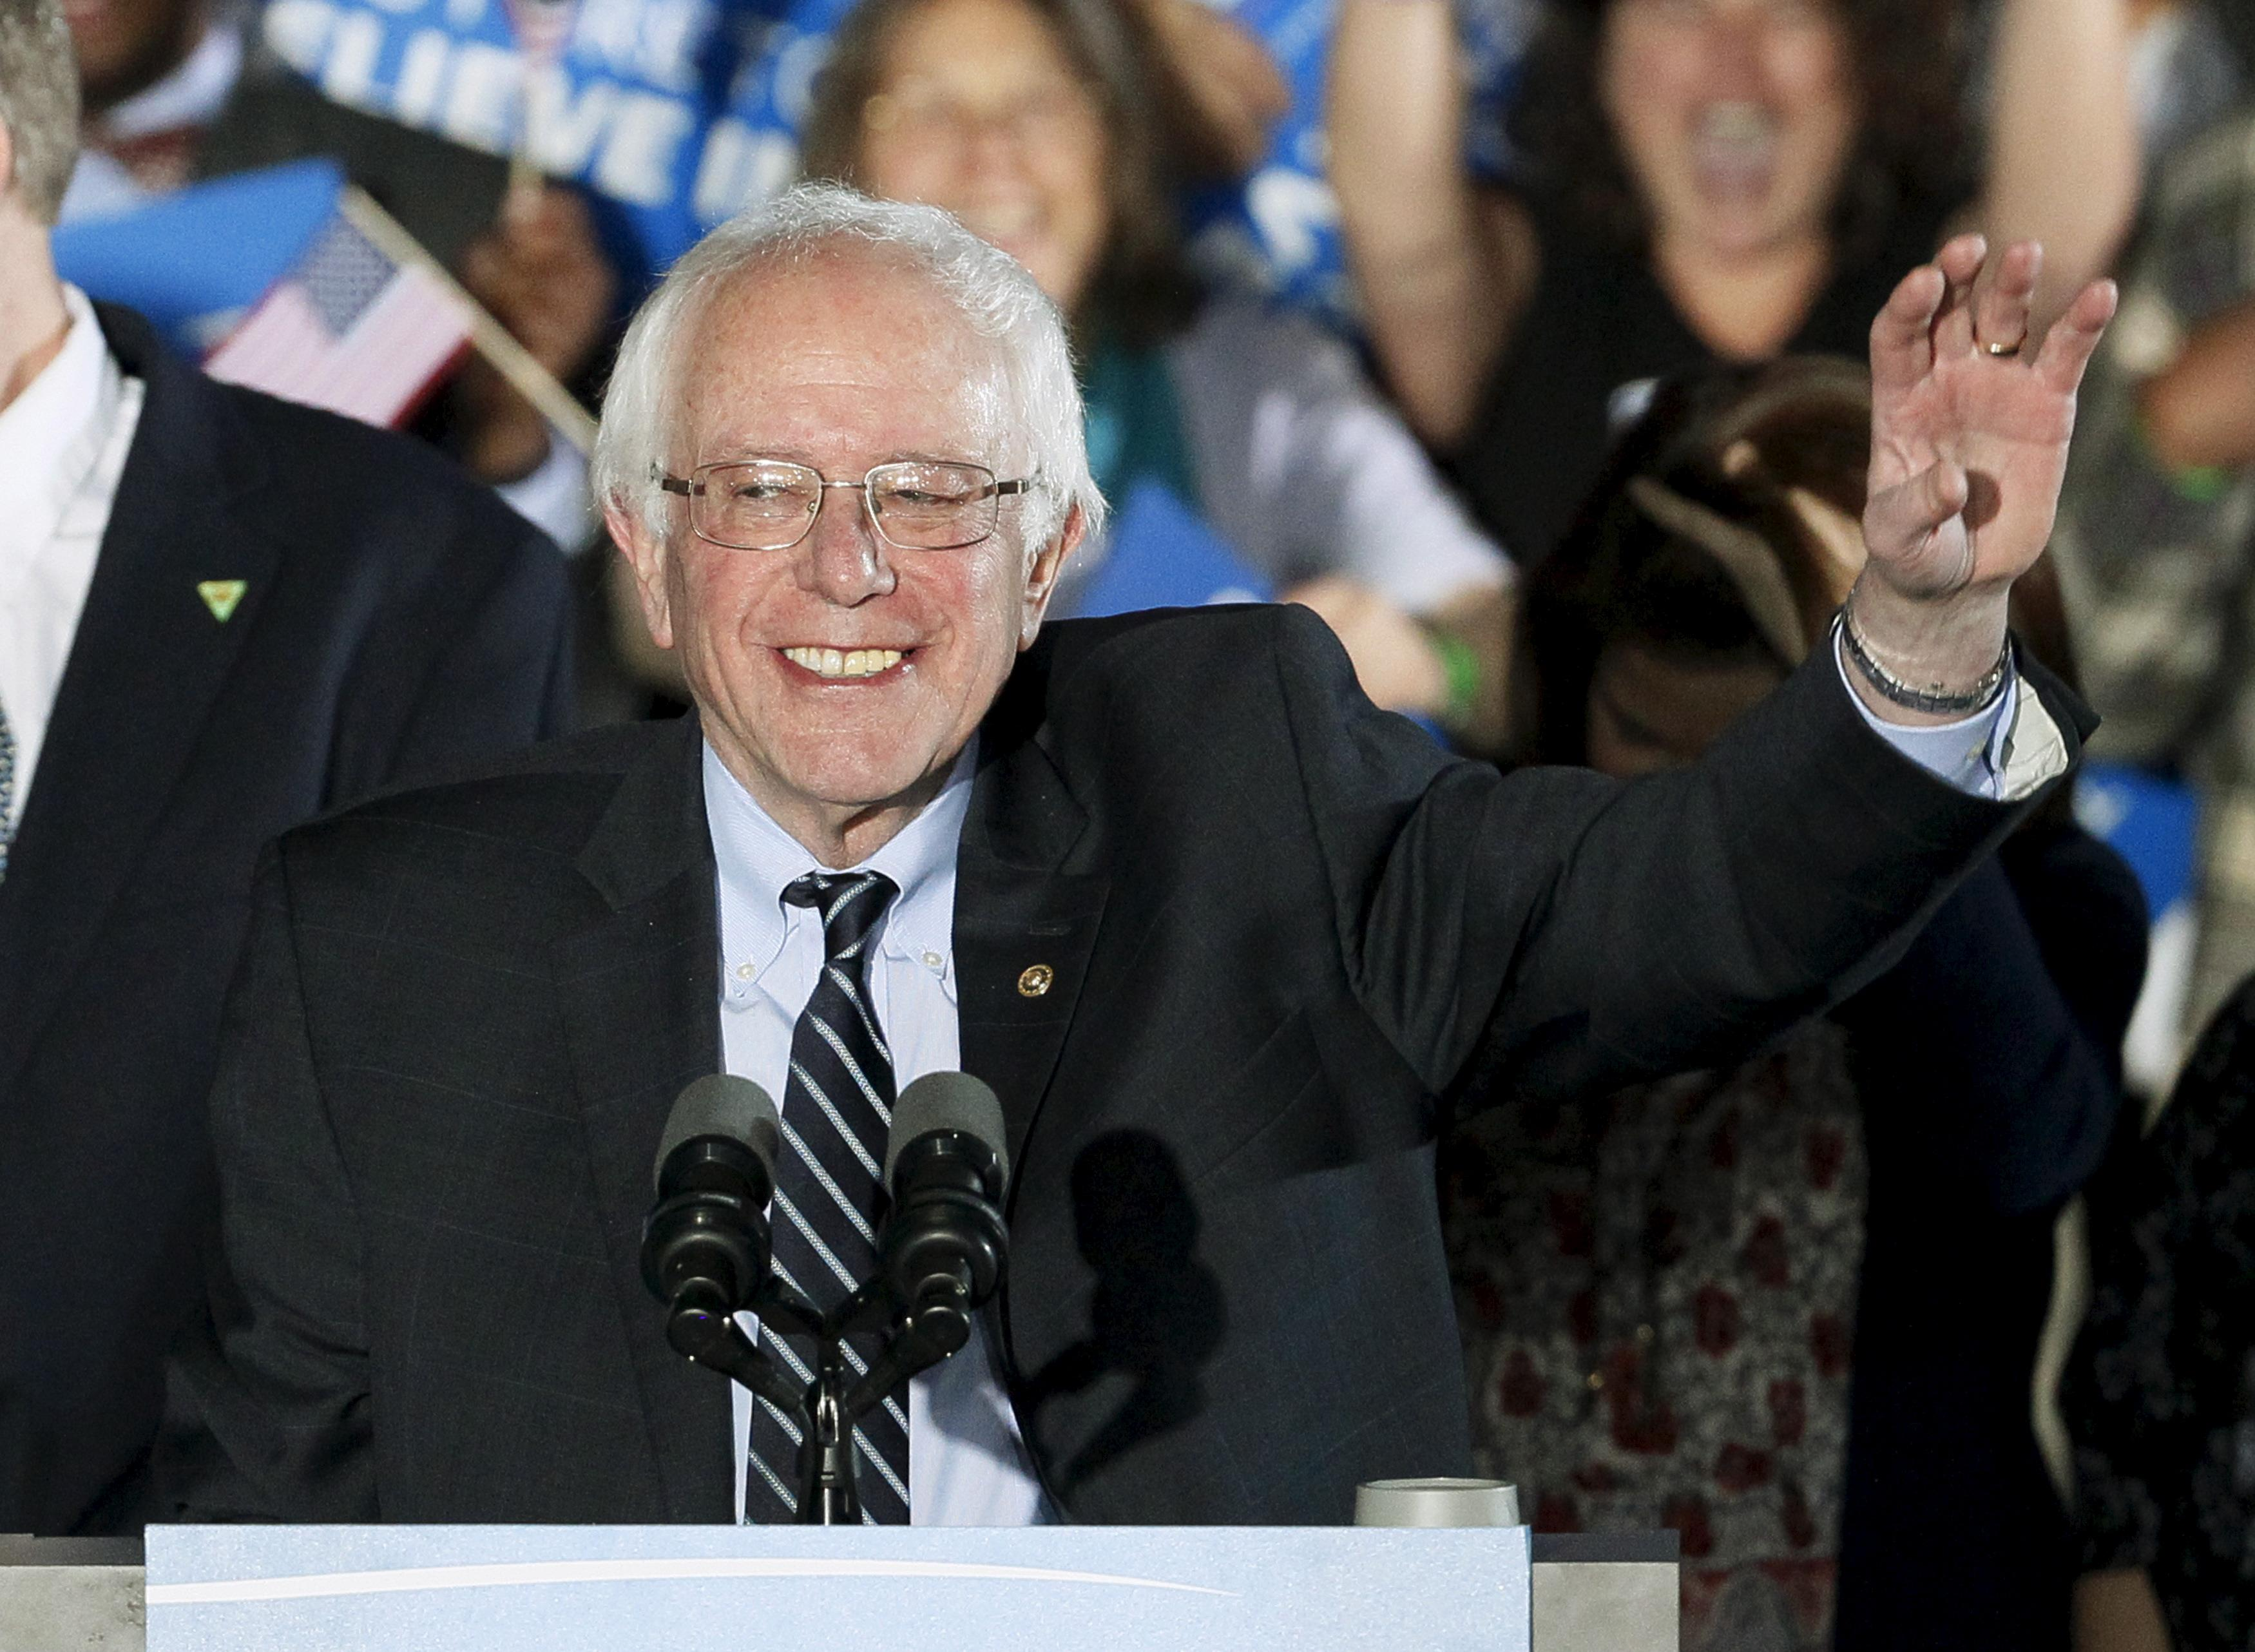 Bernie Sanders vs. Hillary Clinton: Democratic Party Split Over Barack Obama's Record And Liberalism